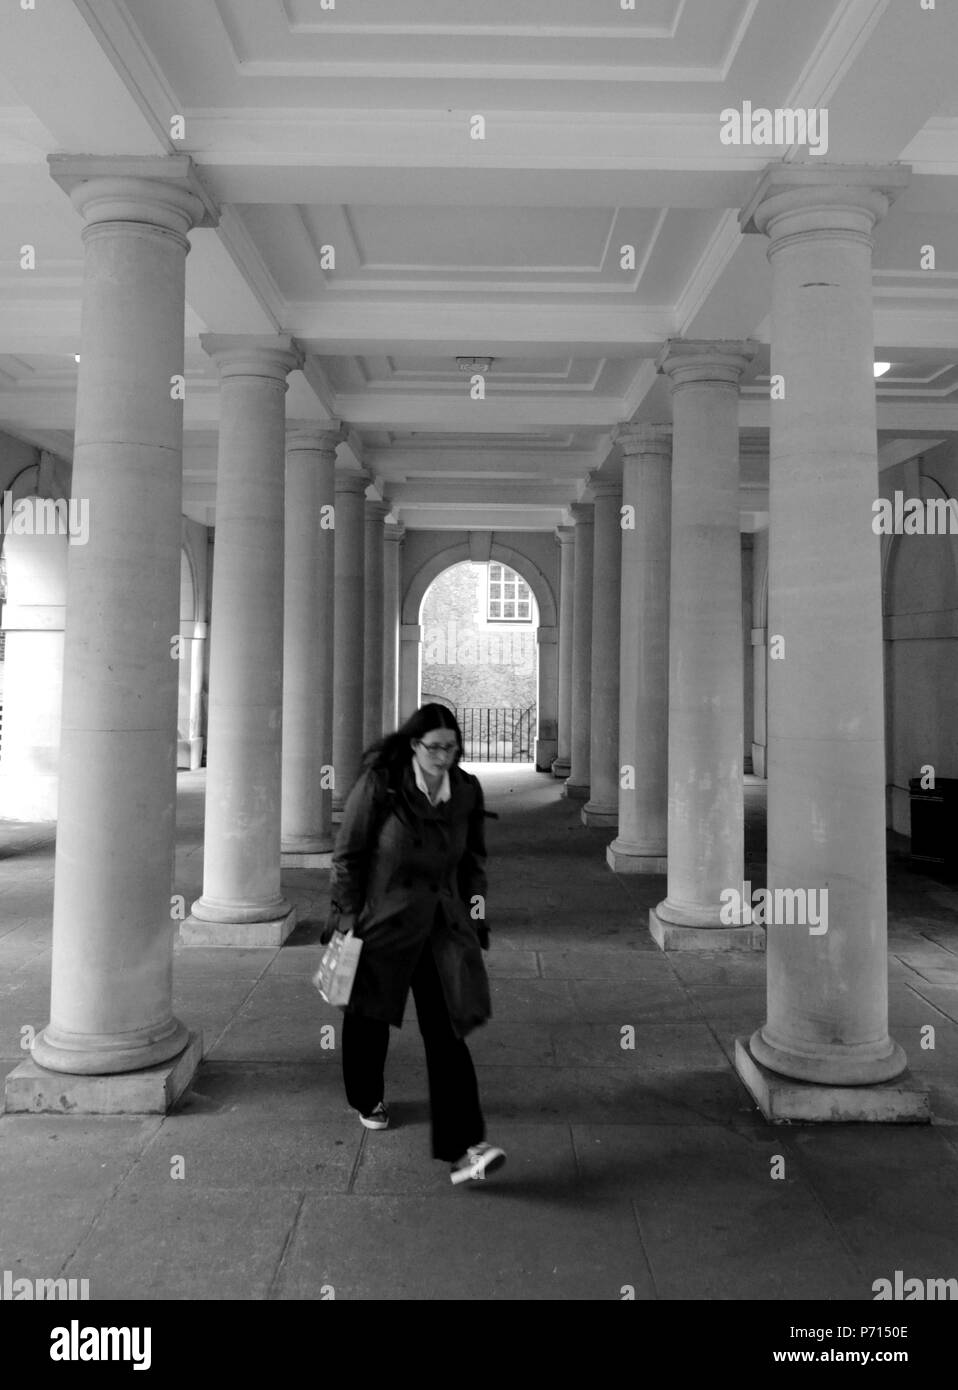 Woman in Pump Court, London UK. - Stock Image